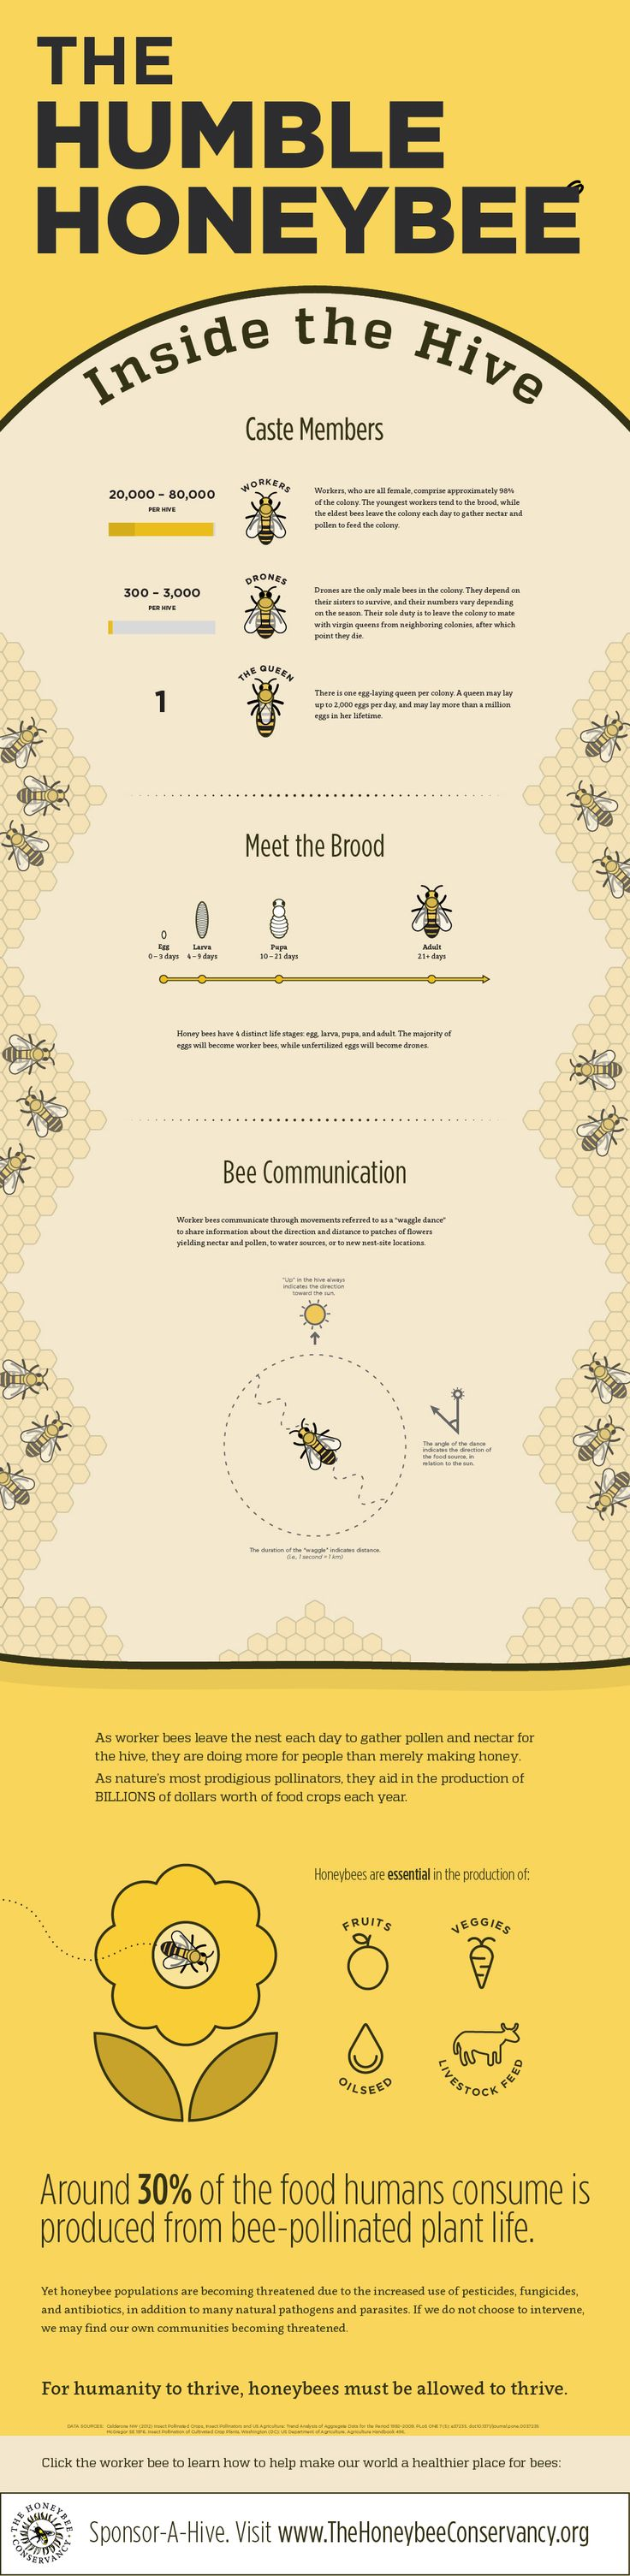 An interview with Hayden Loos, the designer of this bee infographic Haydentook some time to answer some questions about this bee infographic, his interest in bees and how he takes his honey. You can see more of Hayden's designs at www.haydenloos.com 1. What led you to create this bee infographic? I created this bee infographic …